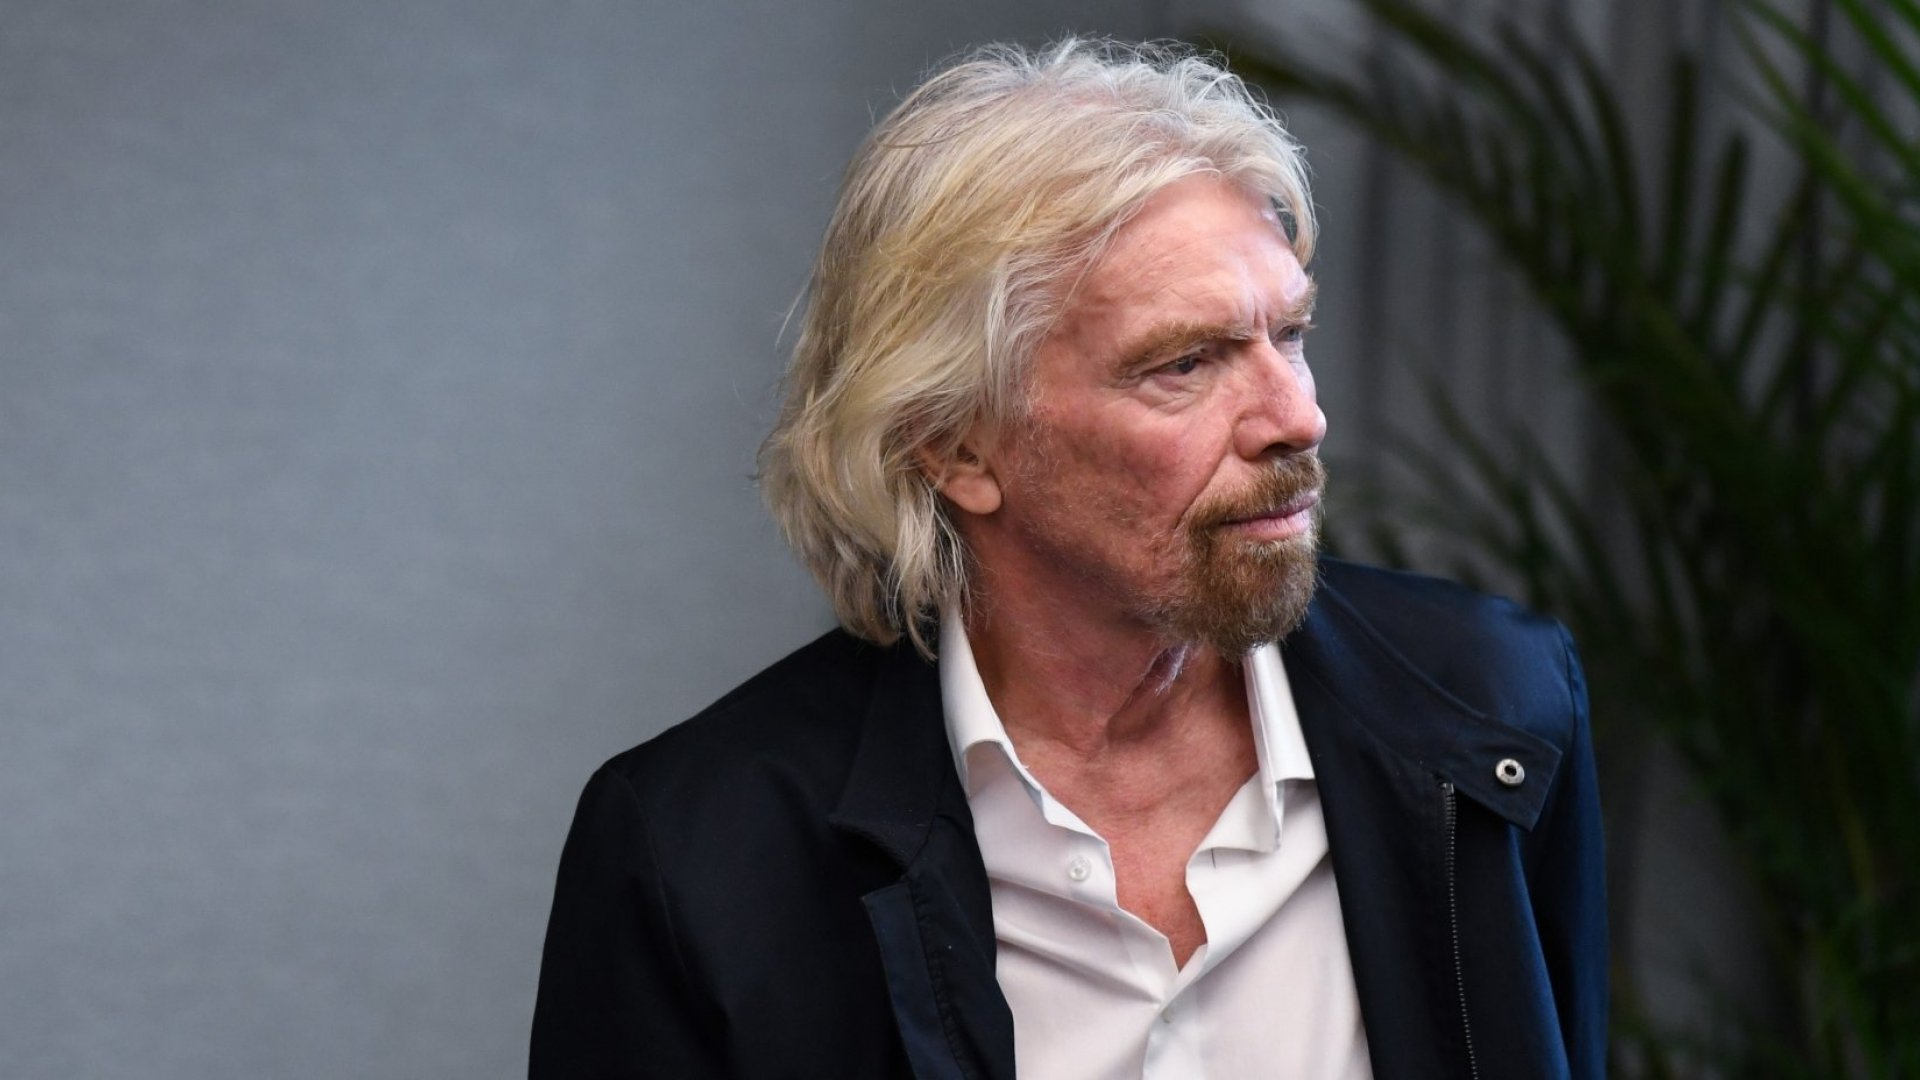 Richard Branson Says This Emotion Helped Him Start Virgin Atlantic, and It Will Work for You Too